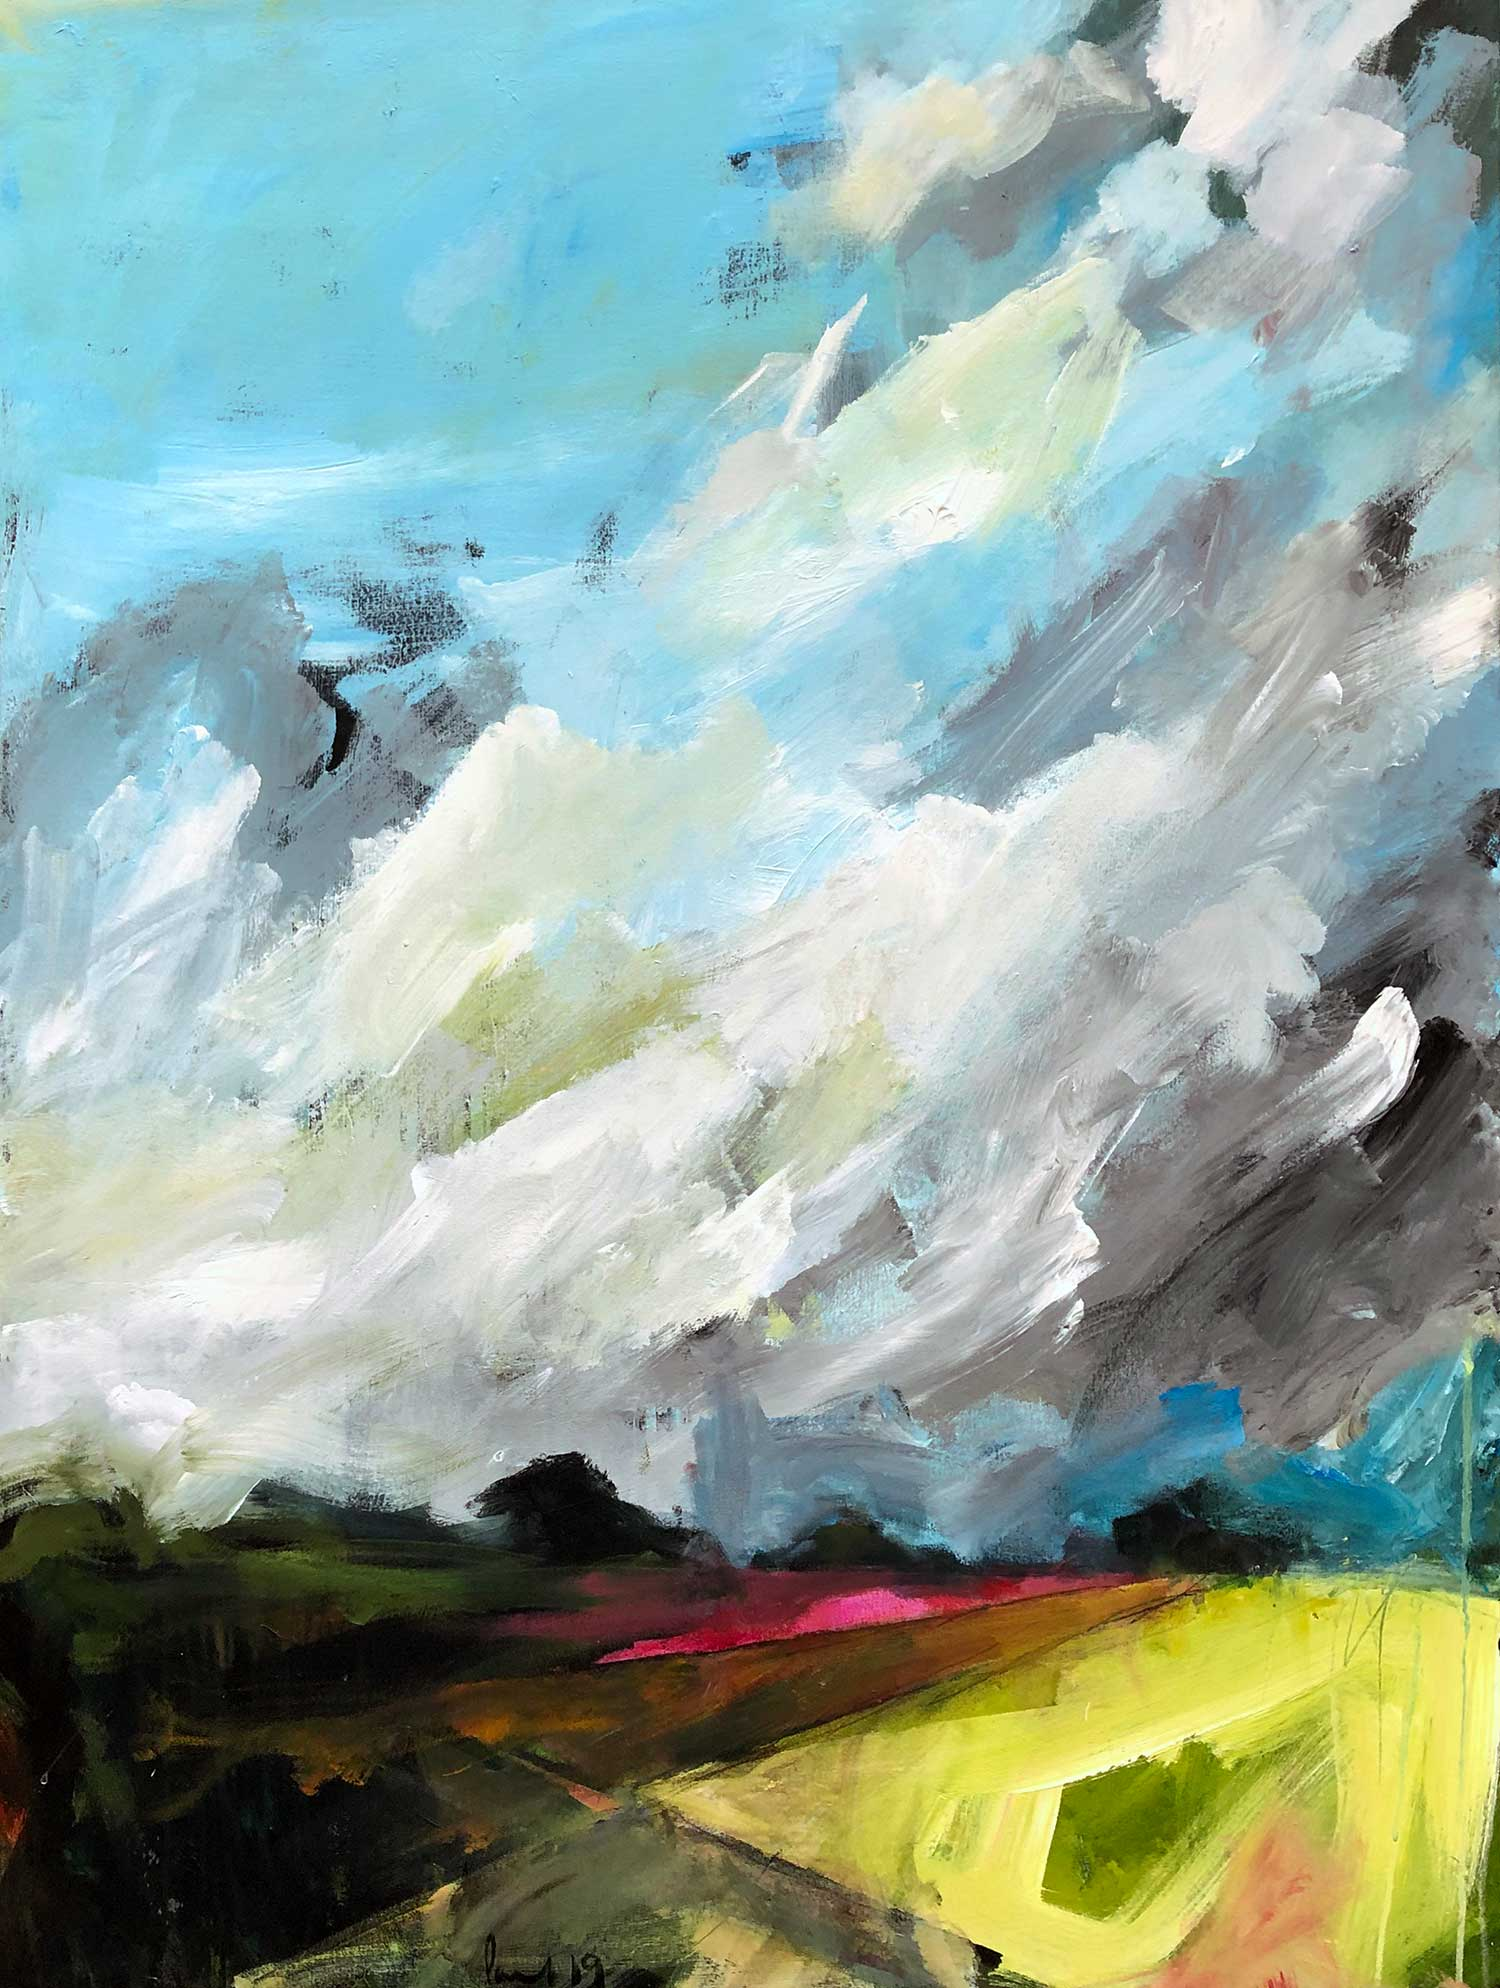 Summer Storm 2019 | 91 x 121cm (image size) 94 x 125 x 3.5cm (Framed size) Acrylic on canvas  Signed on front / reverse  SOLD